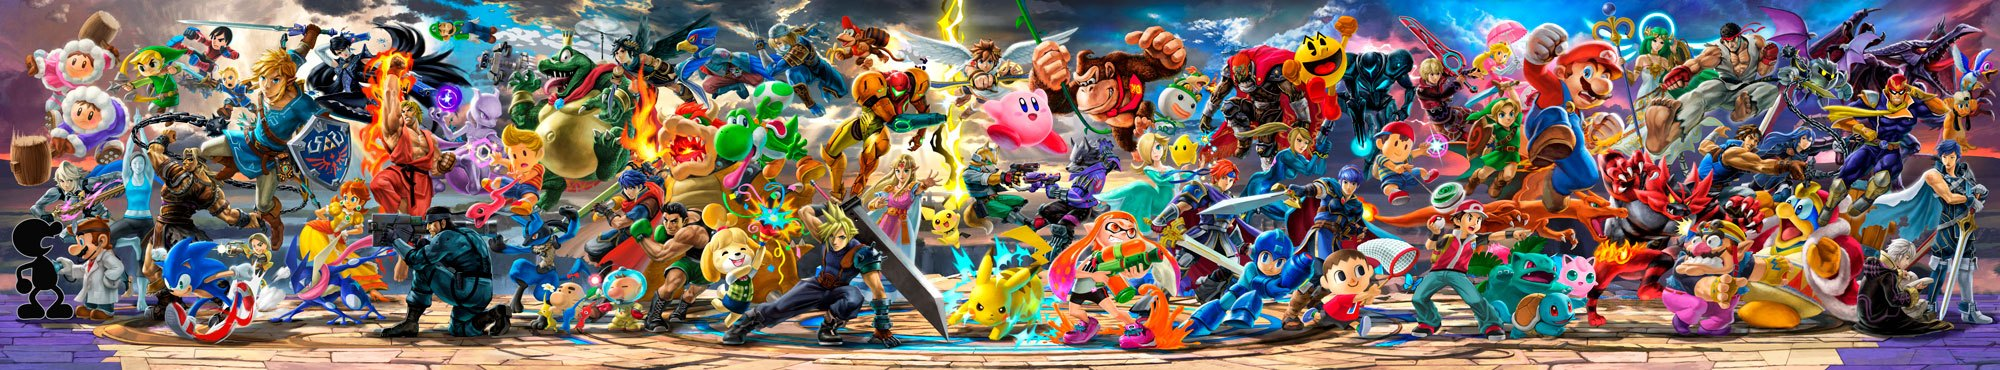 Fotomurales: Super Smash Bros Ultimate